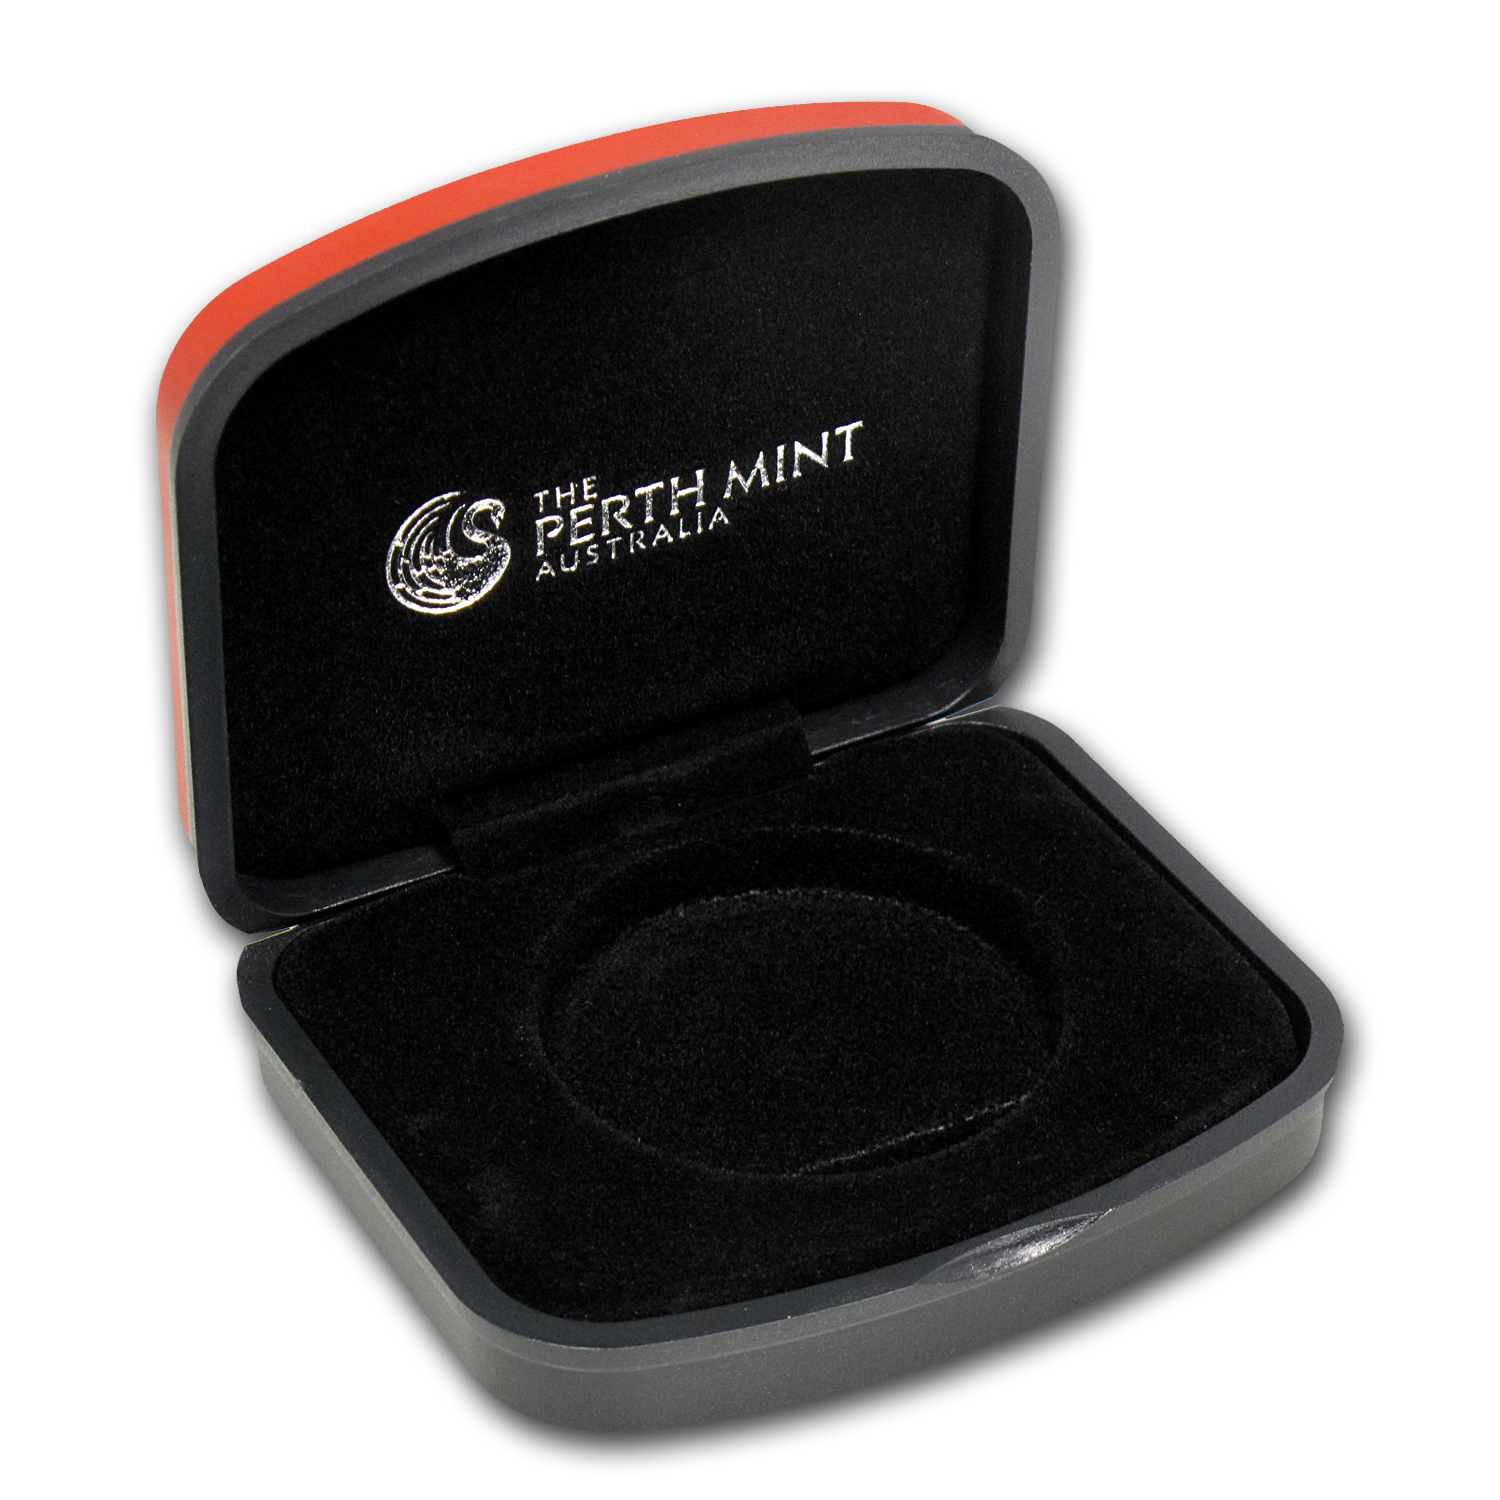 Lunar Series II 1 oz Silver Presentation Box (Perth Mint)